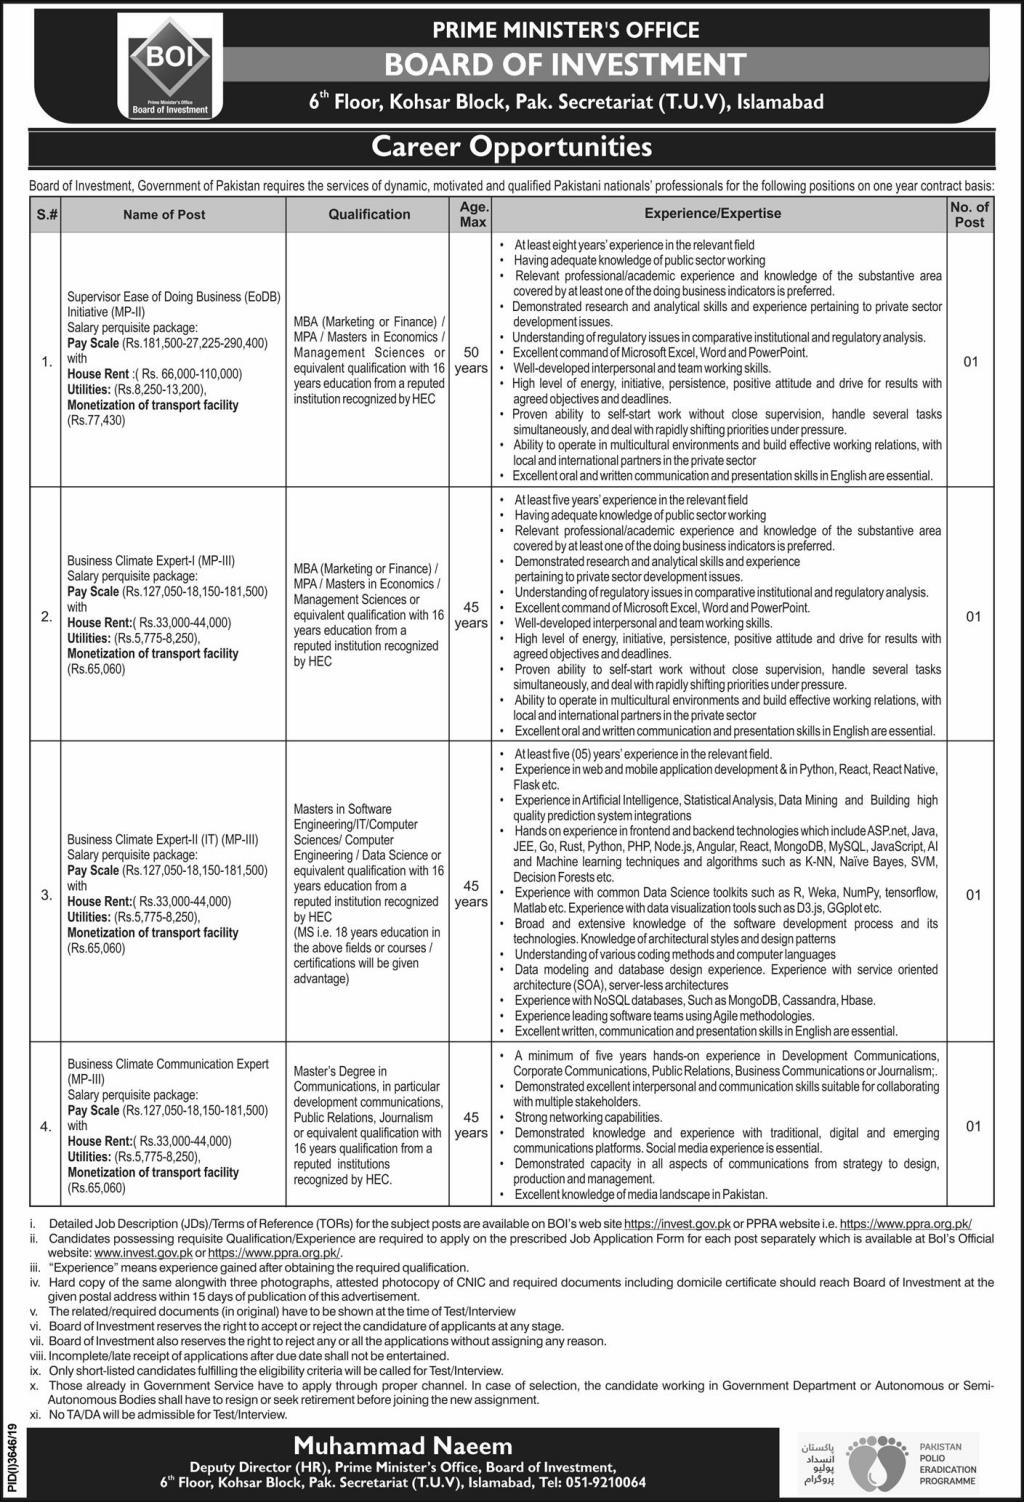 Prime Minister Office Islamabad Jobs January 2020